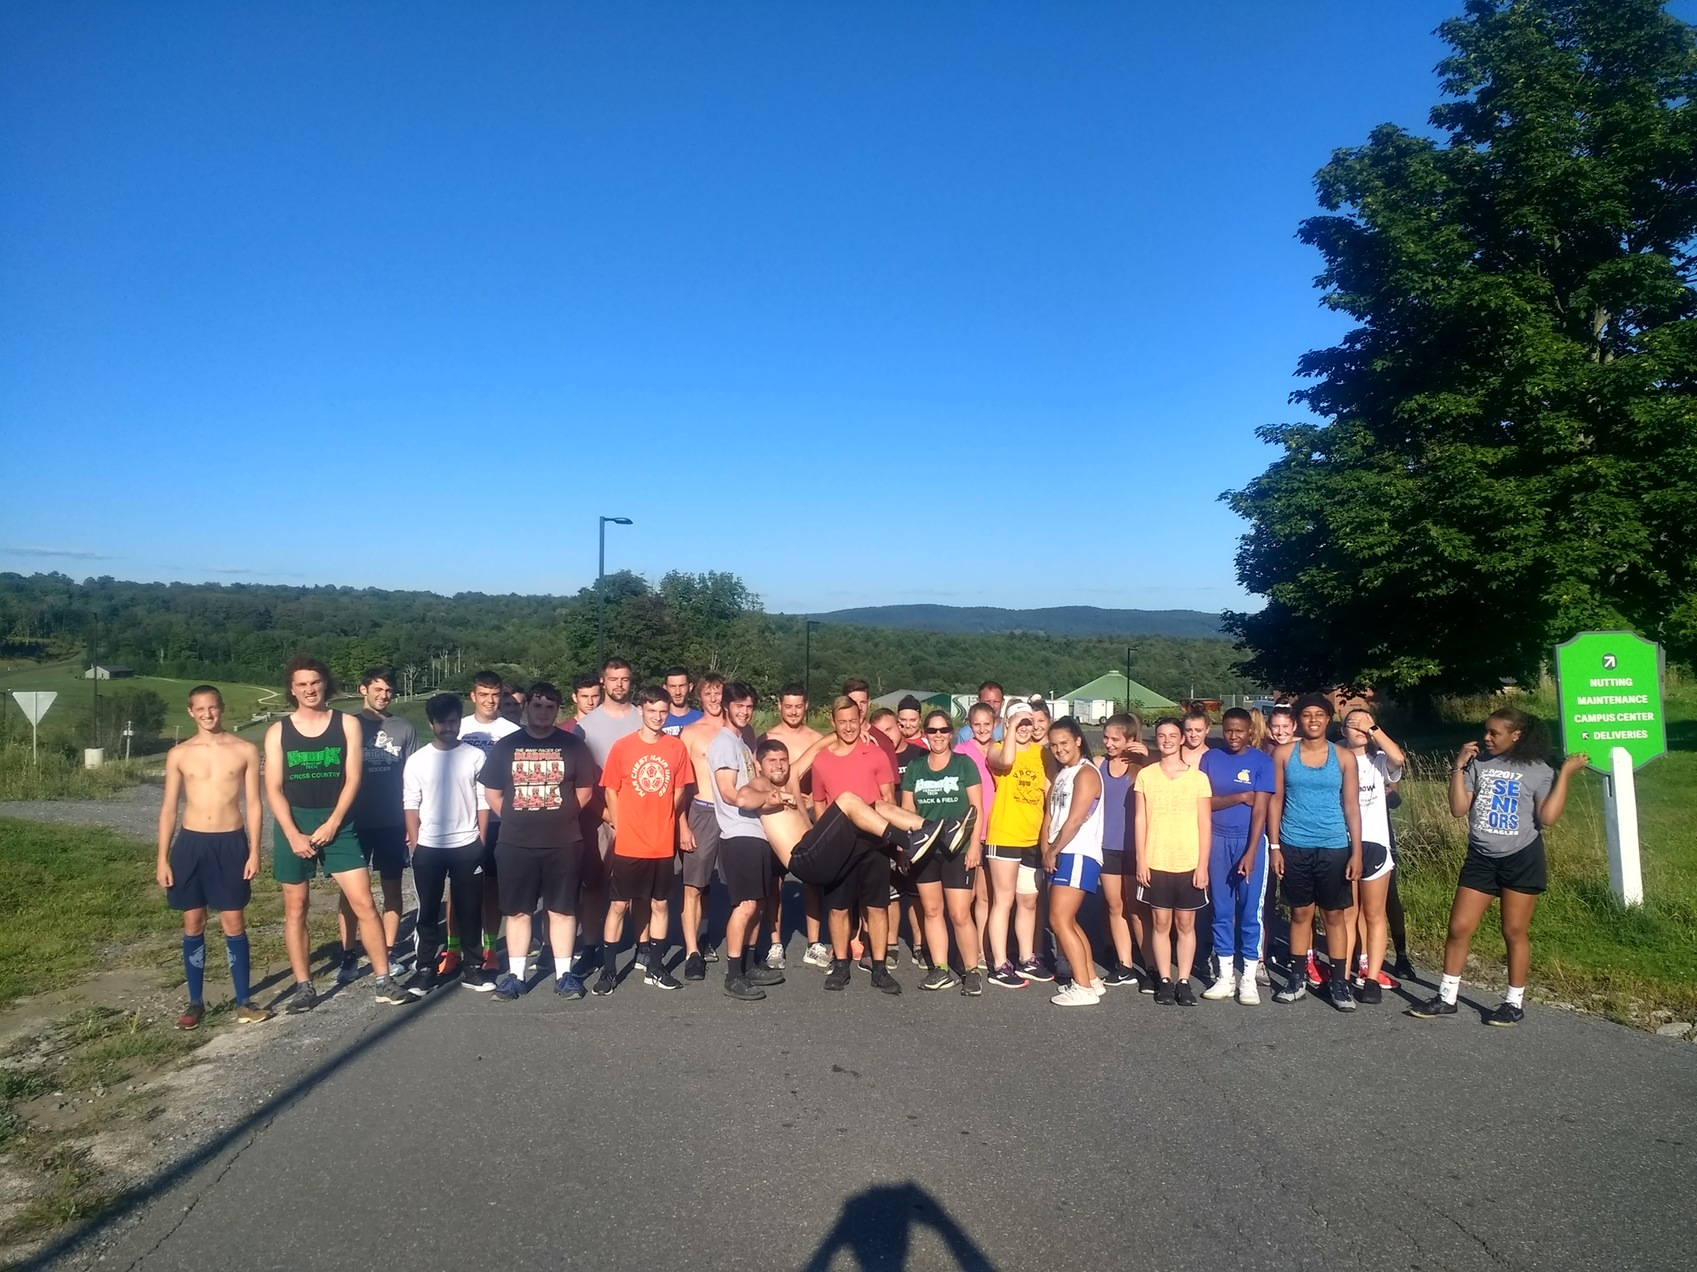 Annual Mile run a sucess